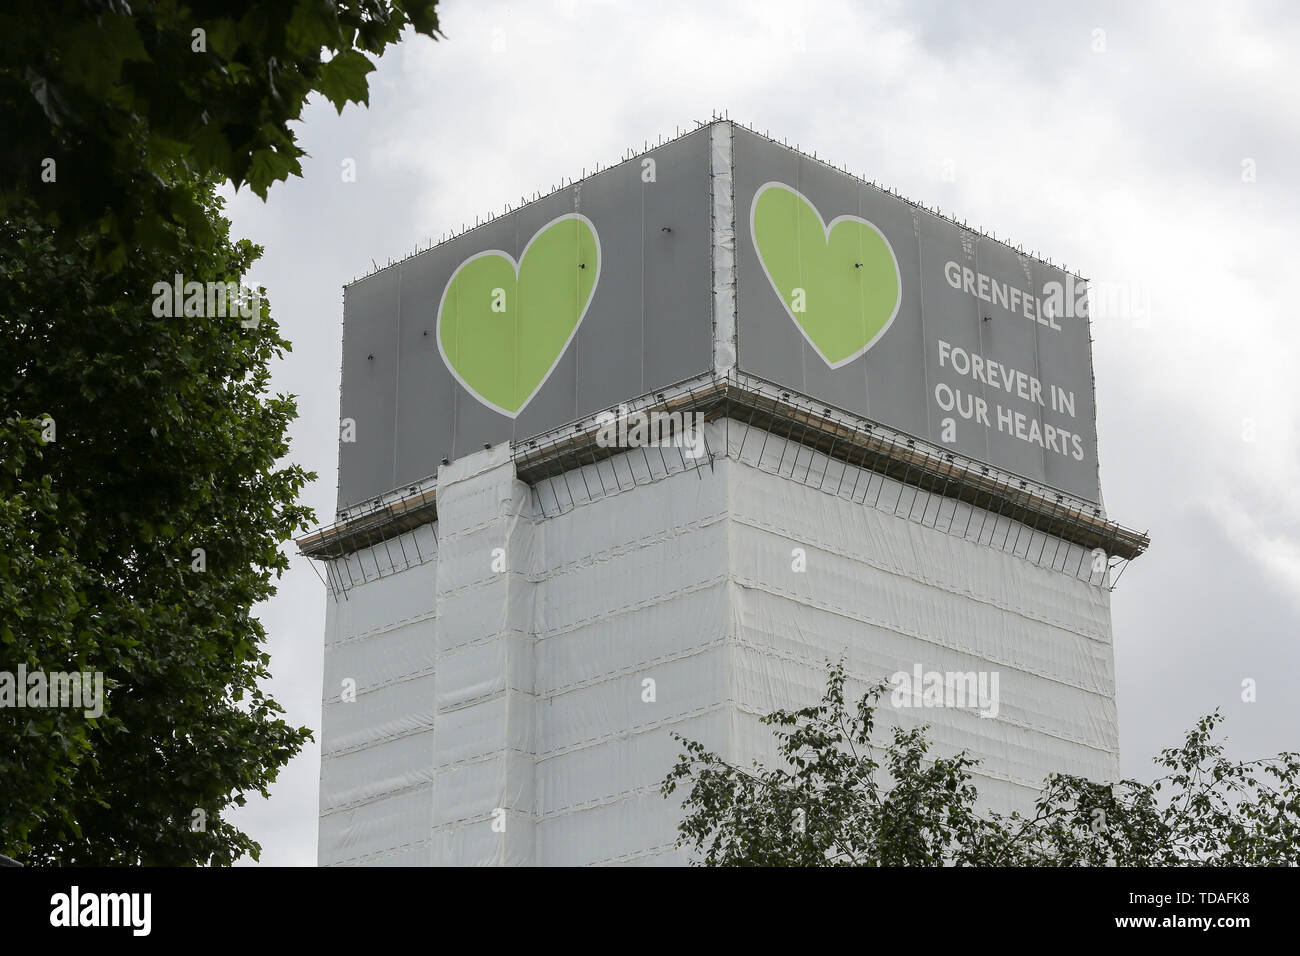 North Kensington, West London. UK 14 Jun 2019 - The view of Grenfell Tower. On 14 June 2017, just before 1:00Êam a fire broke out in the kitchen of the fourth floor flat at the 24-storey residential tower block in North Kensington, West London, which took the lives of 72 people. More than 70 others were injured and 223 people escaped.  Credit: Dinendra Haria/Alamy Live News - Stock Image